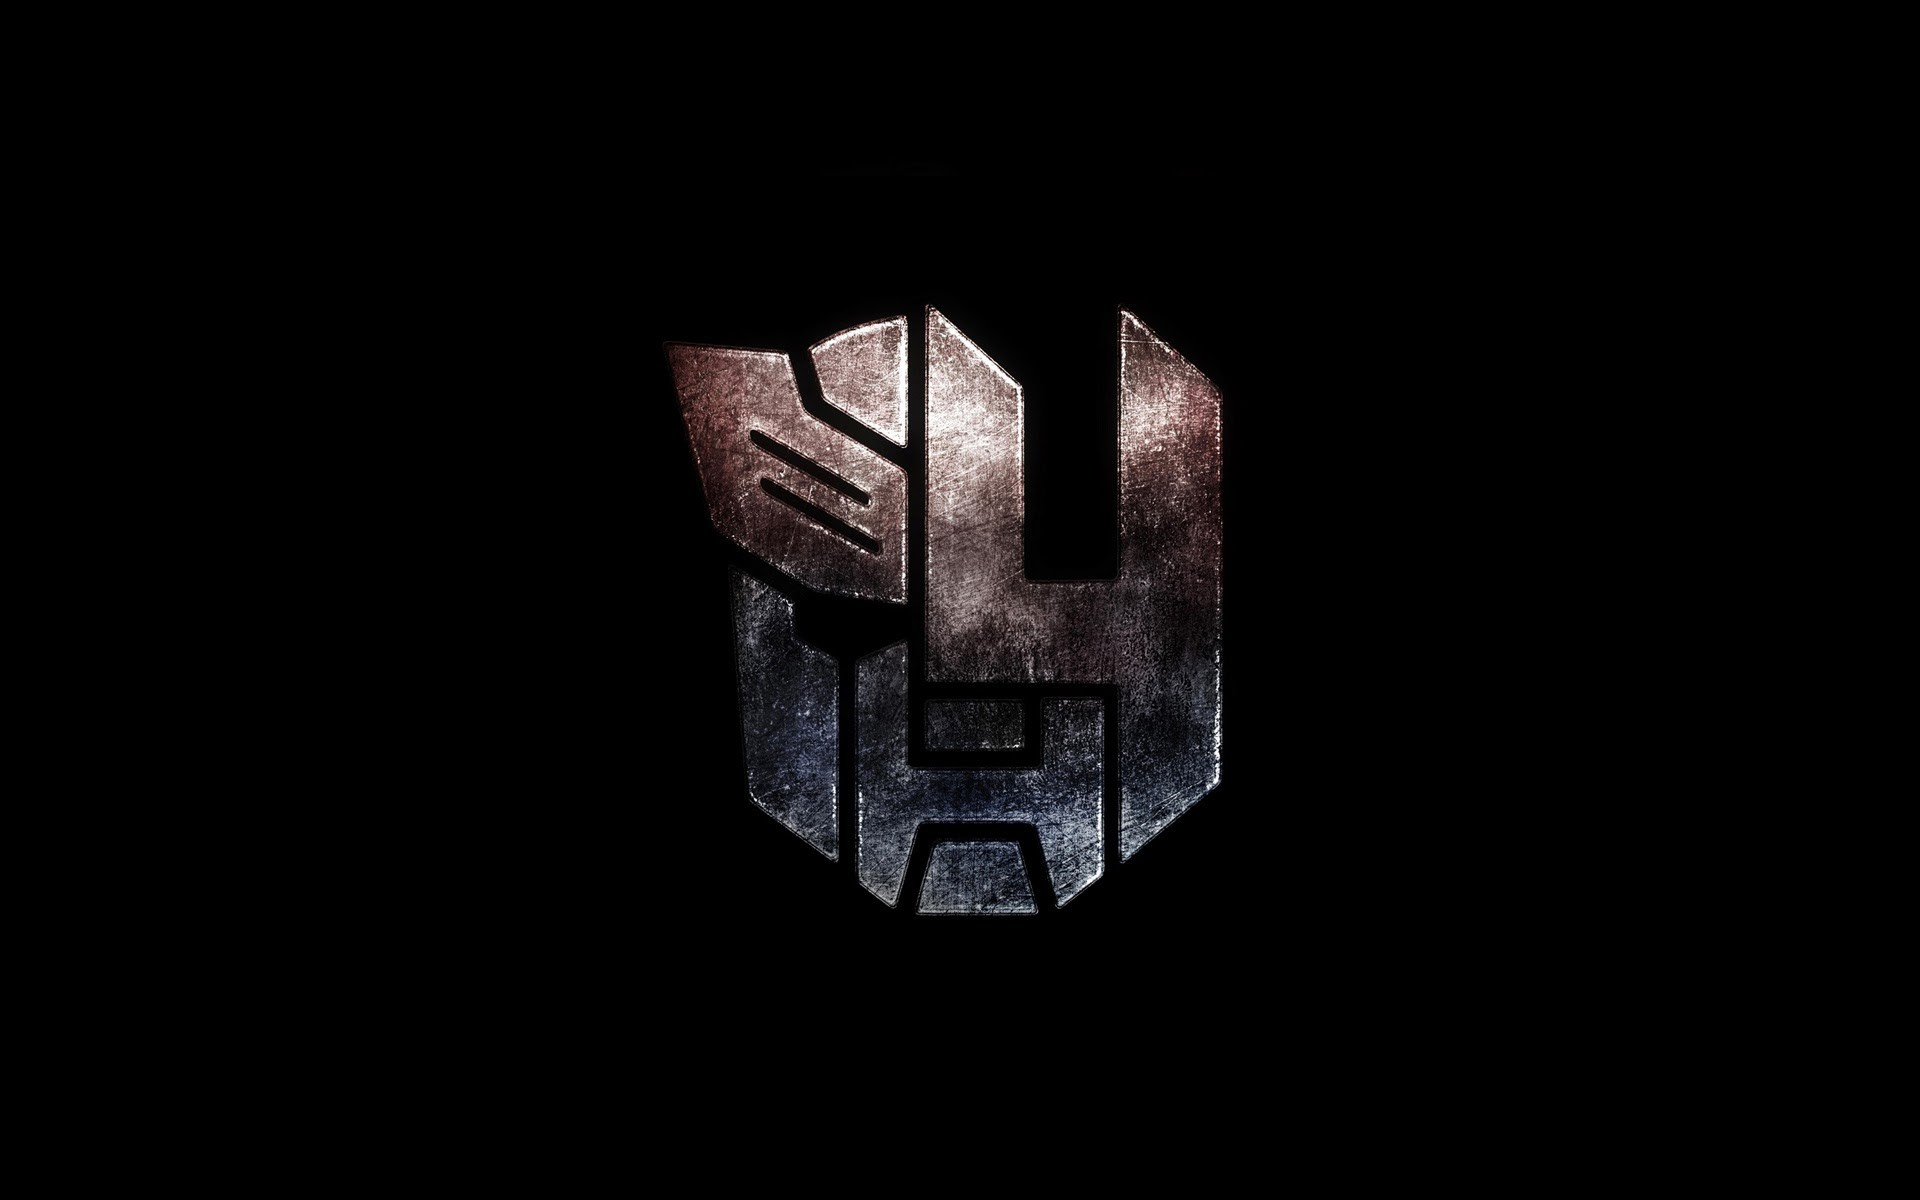 Transformers Wallpaper Autobots 58 Images